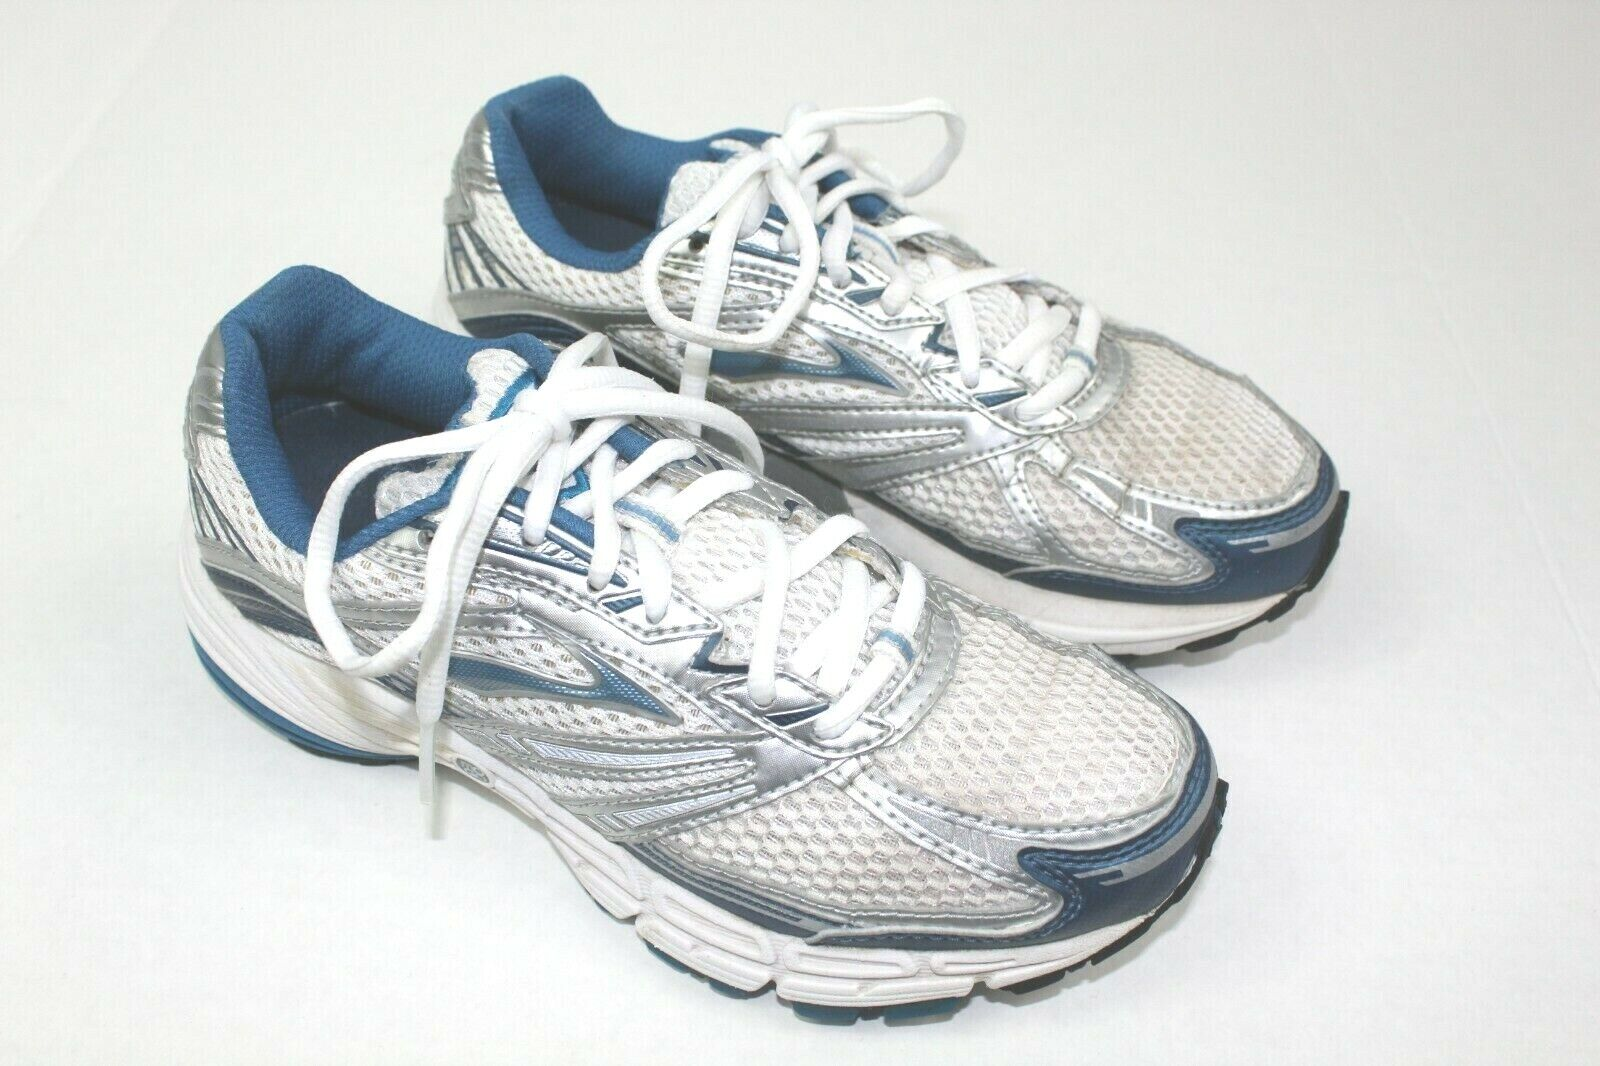 BROOKS brand womens athletic sneakers size 6.5 white and bluee Adrenaline   WK2